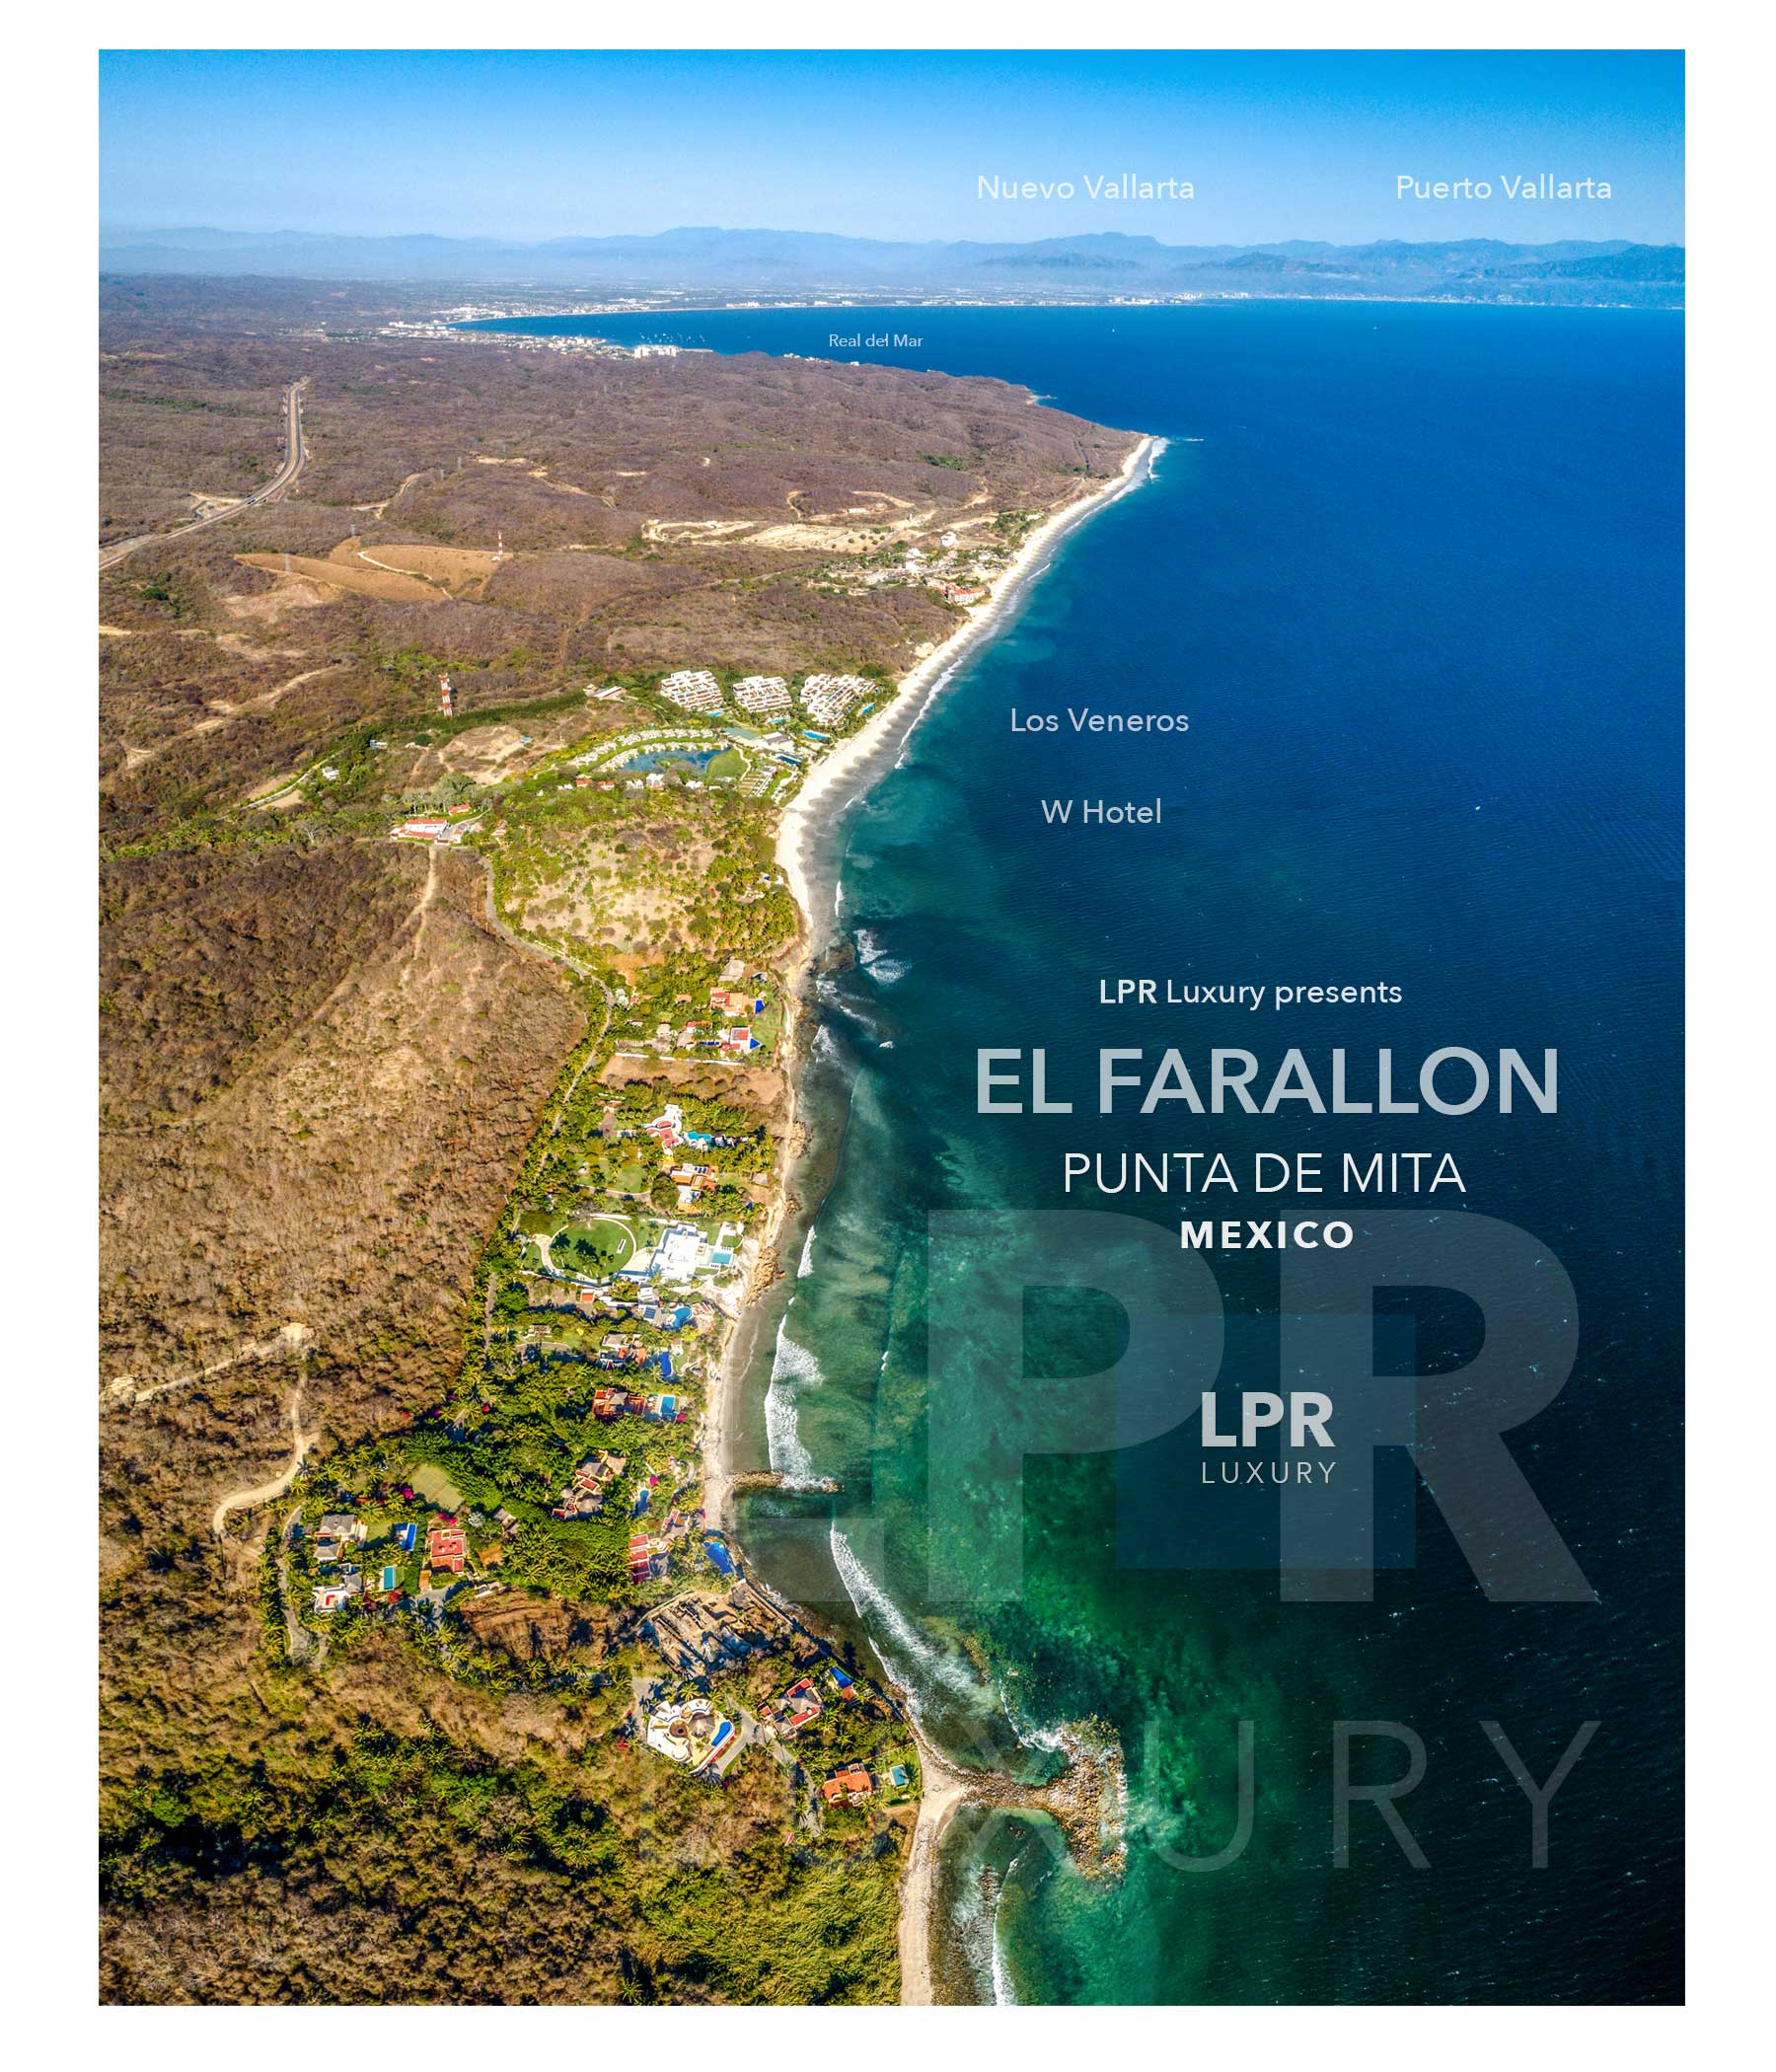 El Farallon - Luxury gated community along the Punta de Mita peninsula, North shore Puerto Vallarta, Riviera Nayarit, Mexico